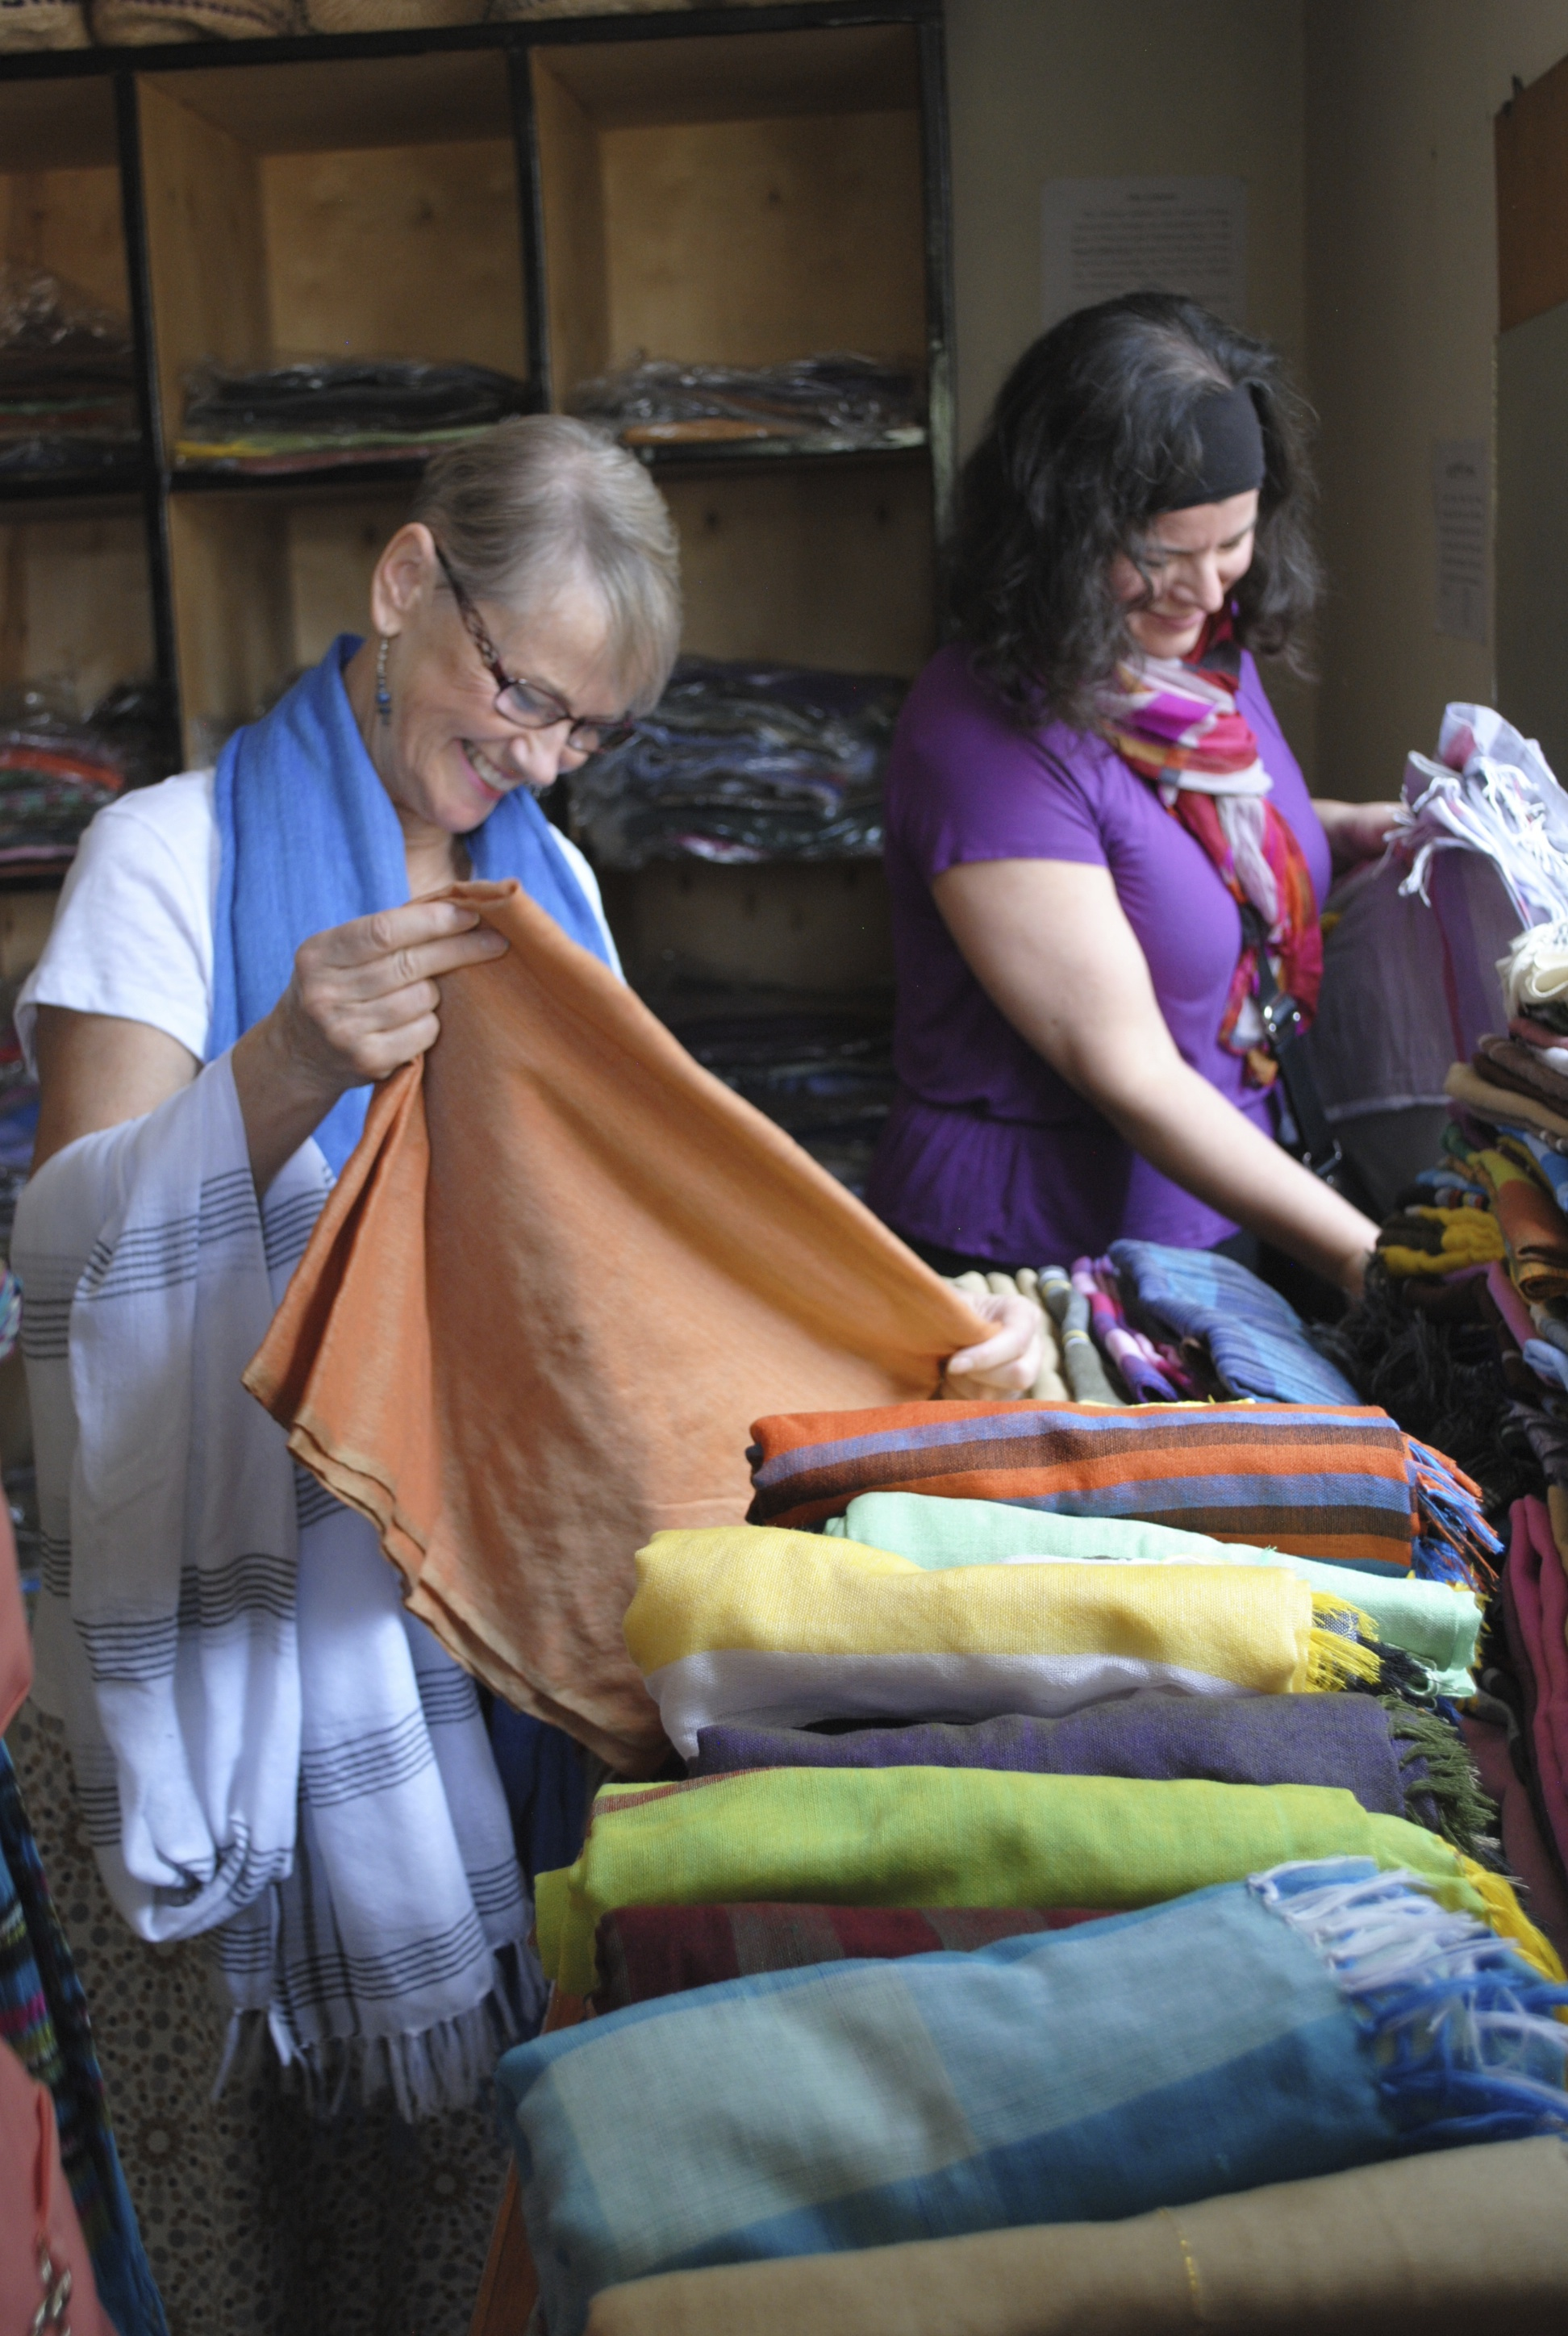 Val Easton and Shelley Green look through scarves made at the Former Women Fuel and Wood Carriers Association. That group offers alternative employment to women who used to work carrying massive loads of wood on their backs, up and down the hills of Addis Ababa.